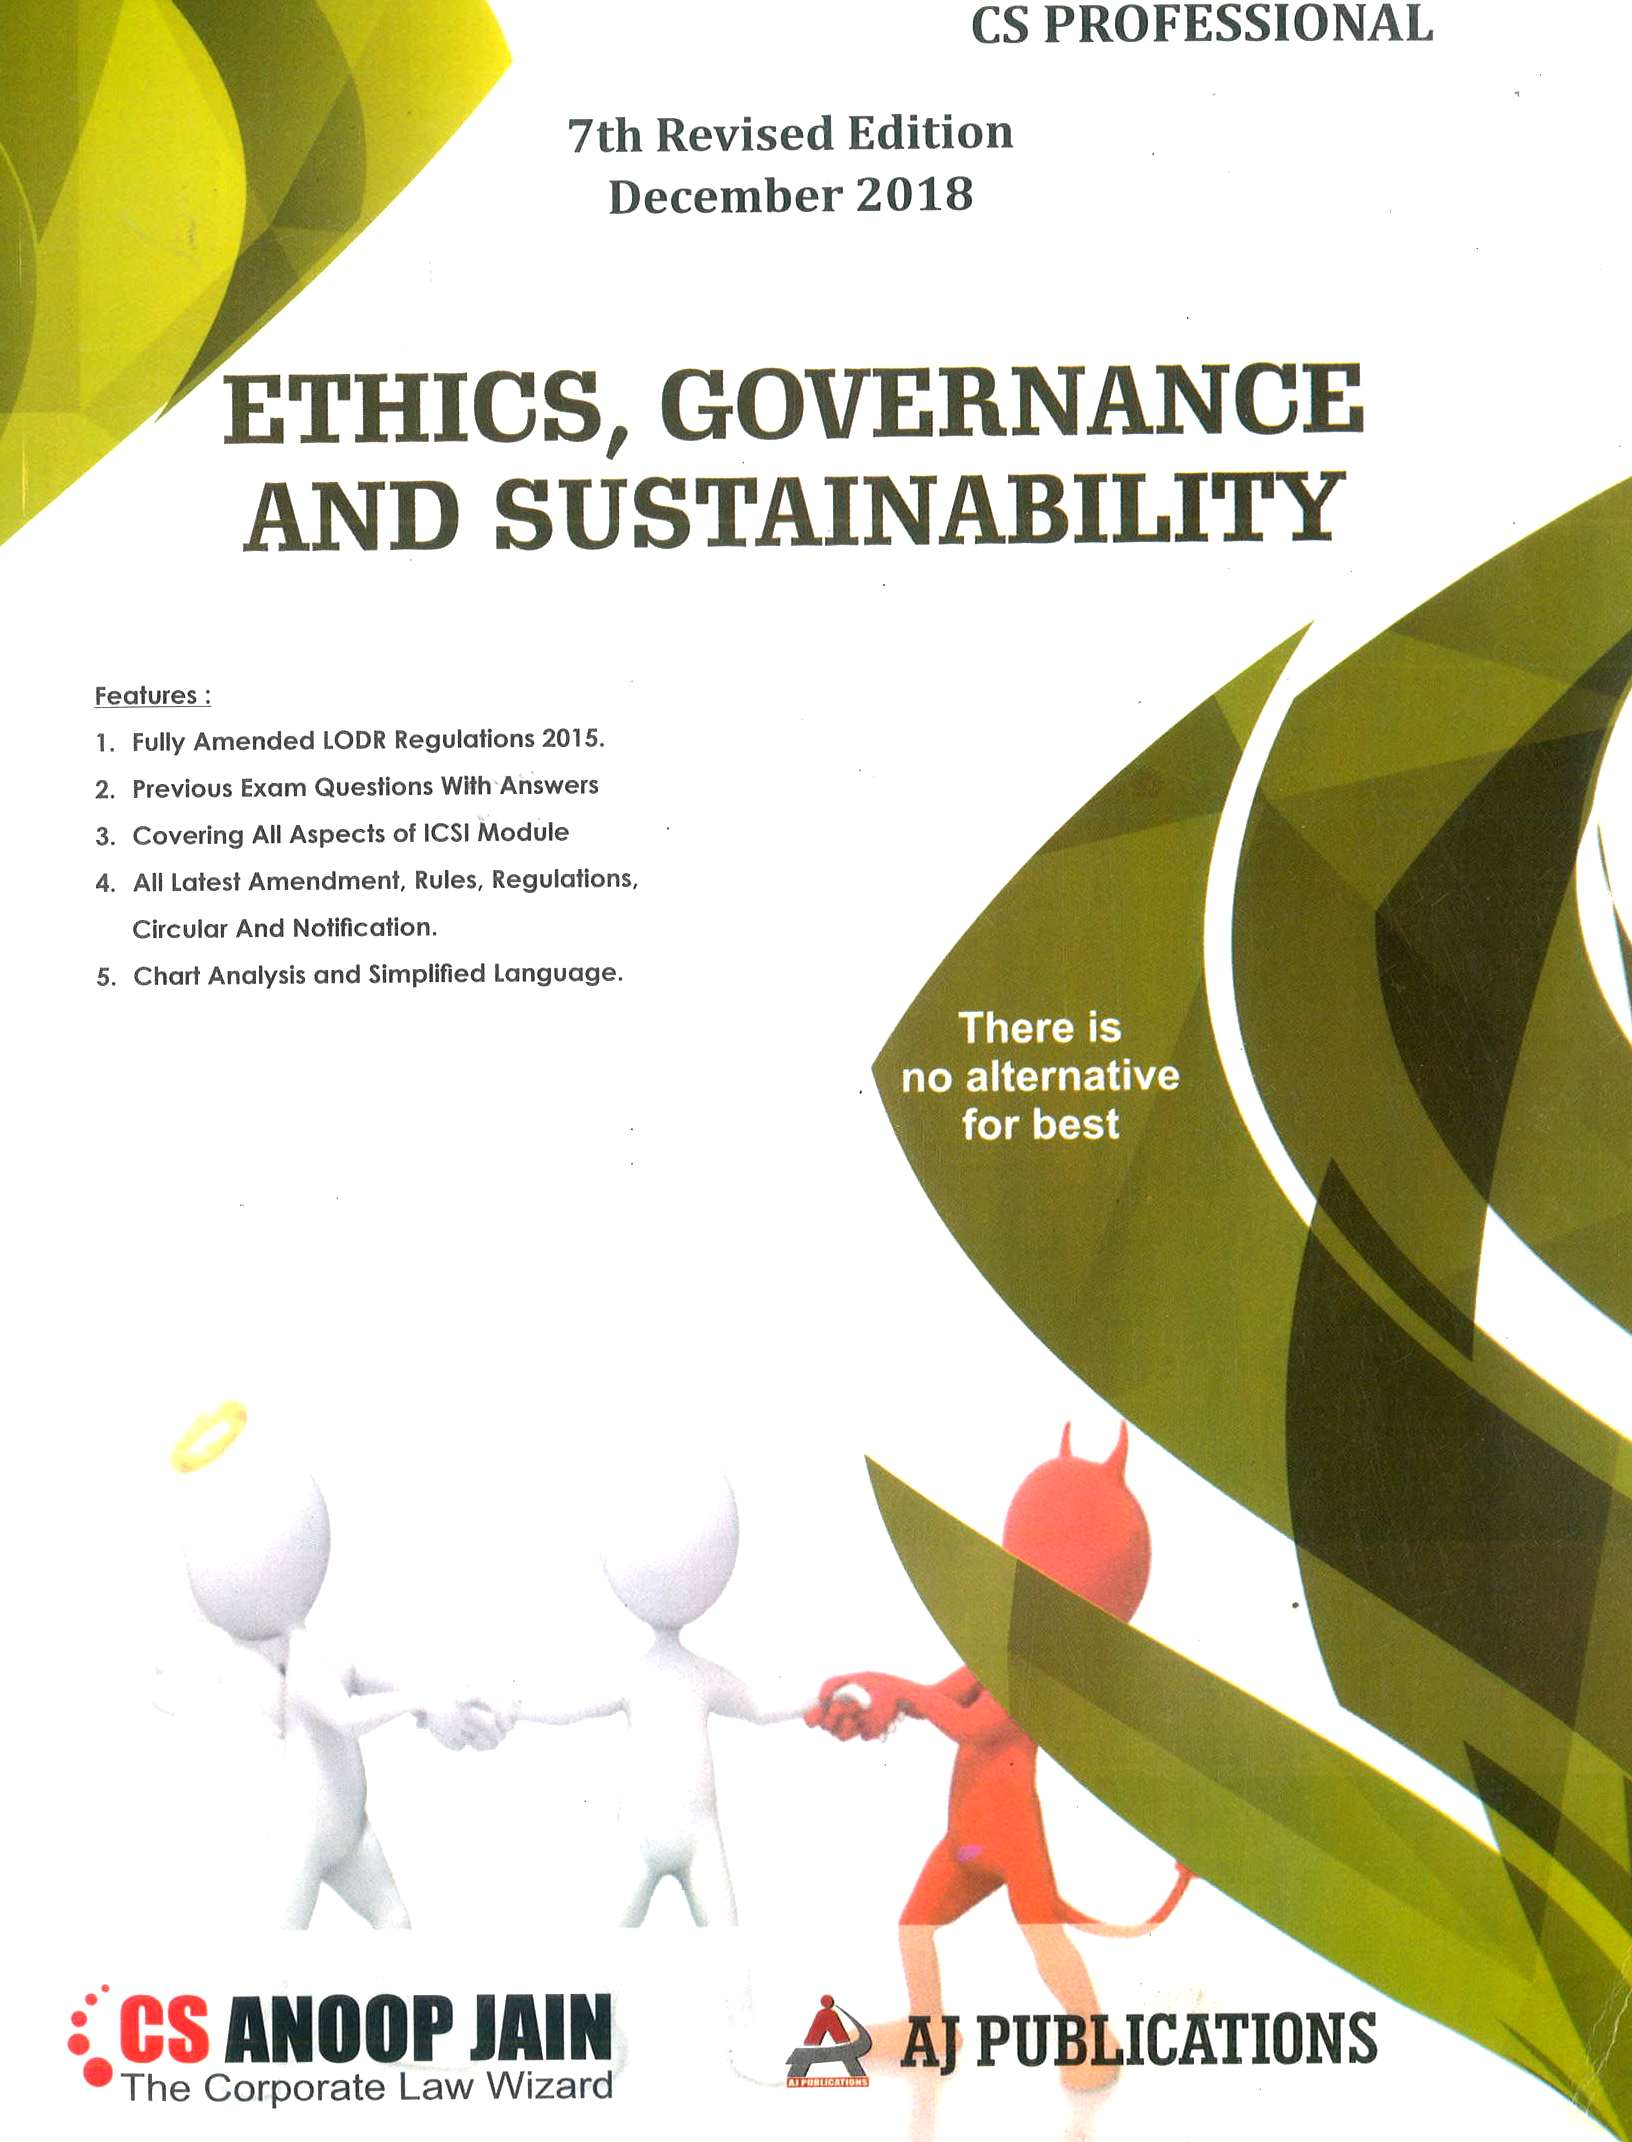 AJ Publication Ethics, Governance & Sustainability for Dec 2018 Exam for CS Professional by CS Anoop Jain (AJ Publishing) 7th Edition 2018